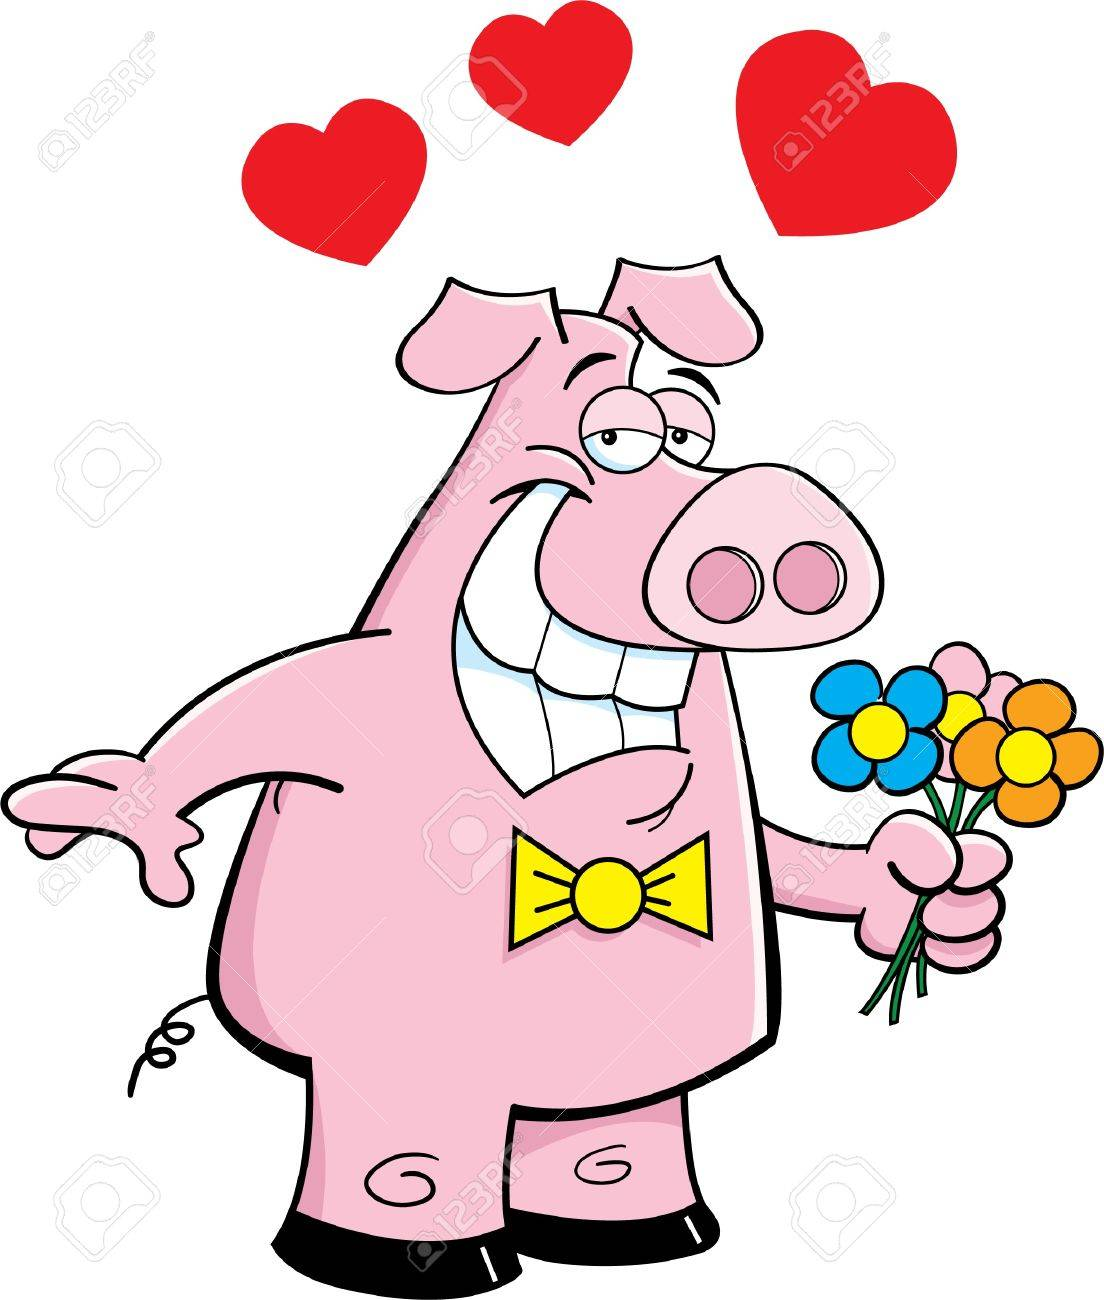 Cartoon illustration of a pig holding flowers Stock Vector - 14847864